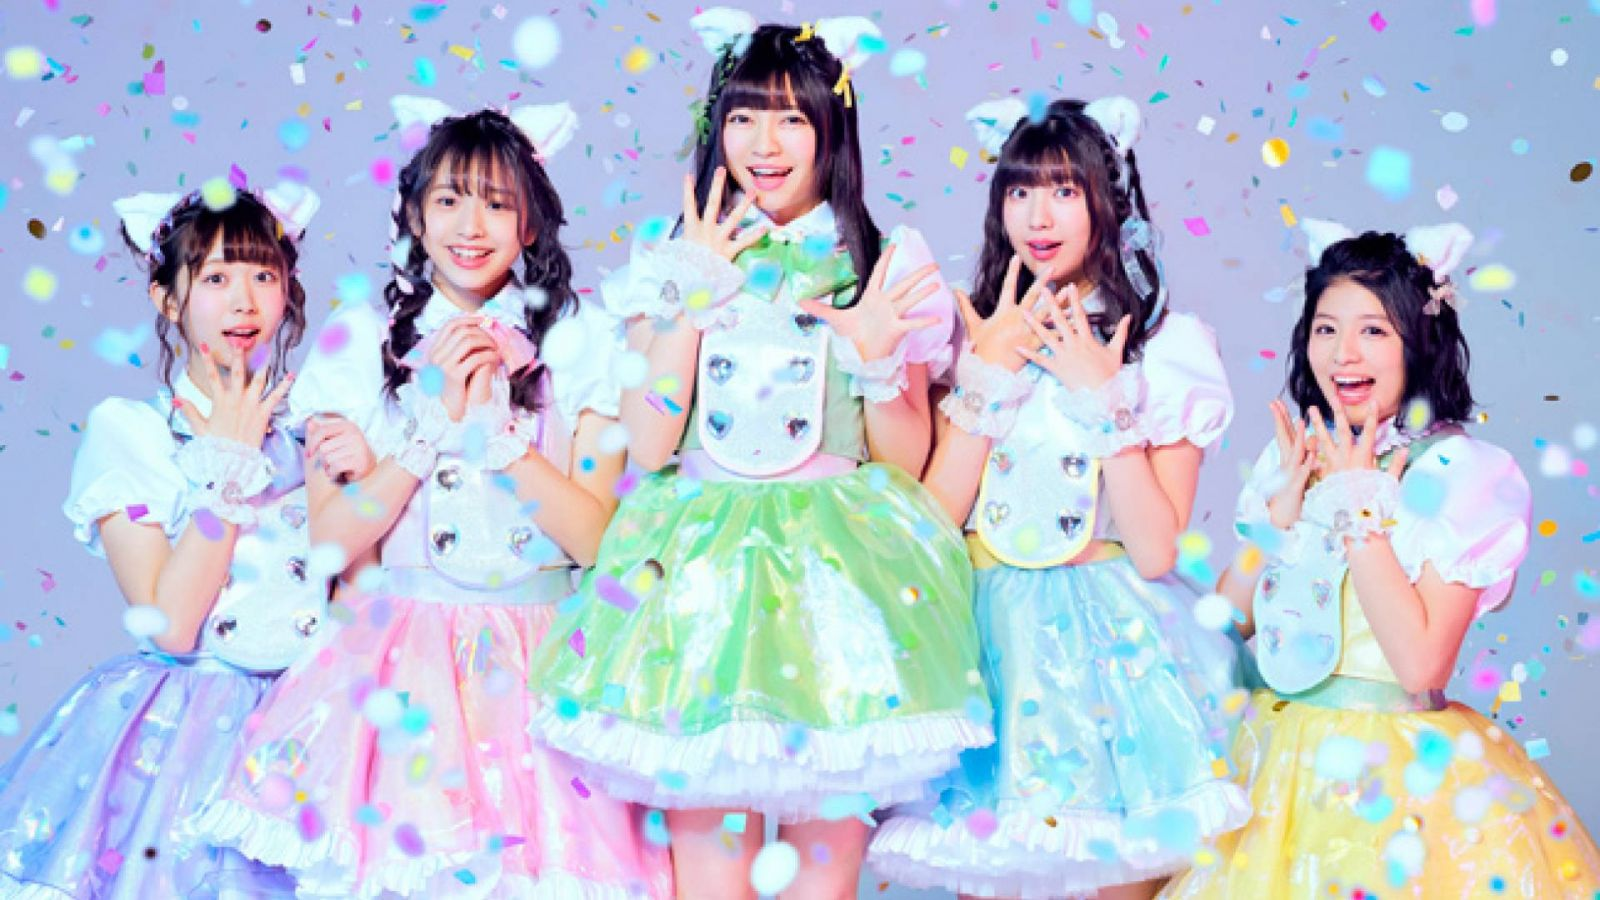 Wasuta to Release New Mini-Album and Singles © 2018 avex. All rights reserved.